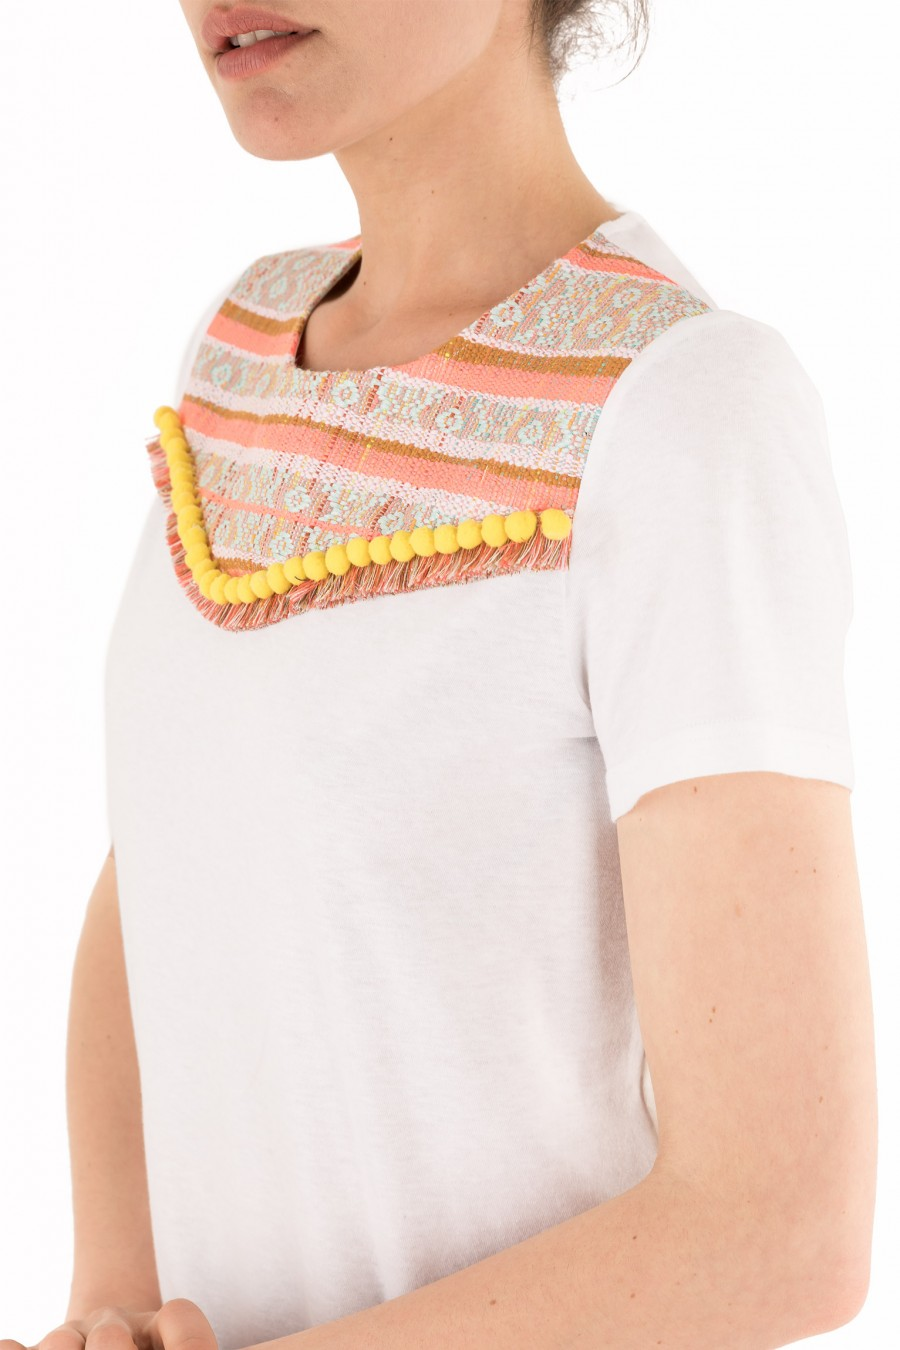 T-shirt with orange print yoke